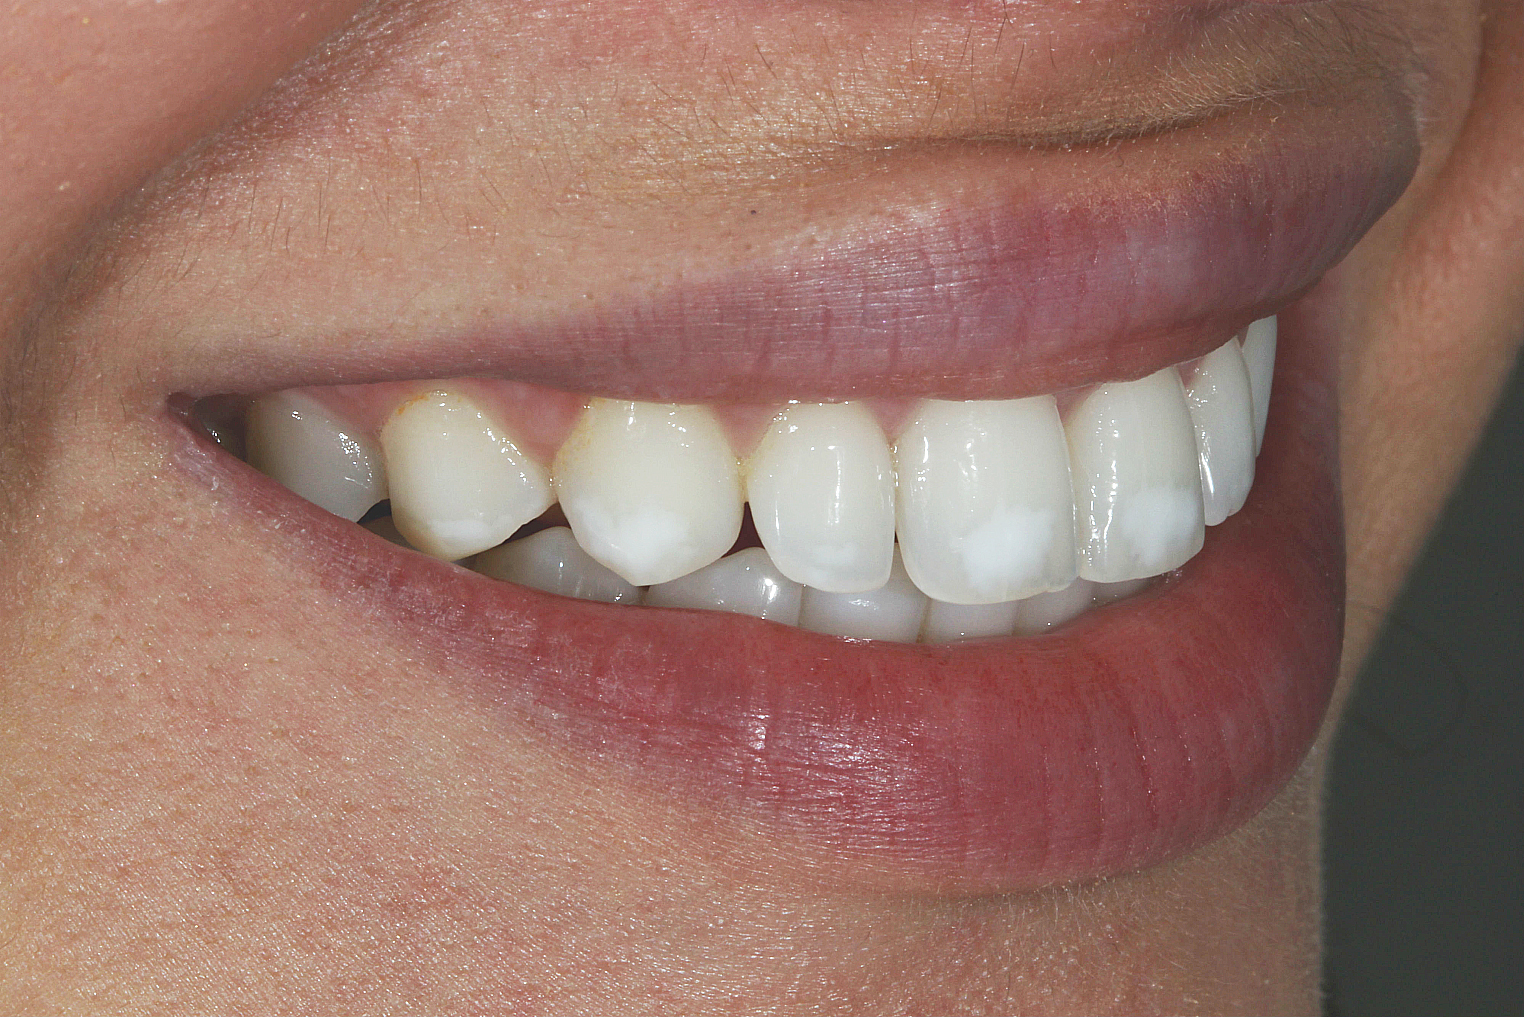 Teeth White Medicine Whitening For Teeth